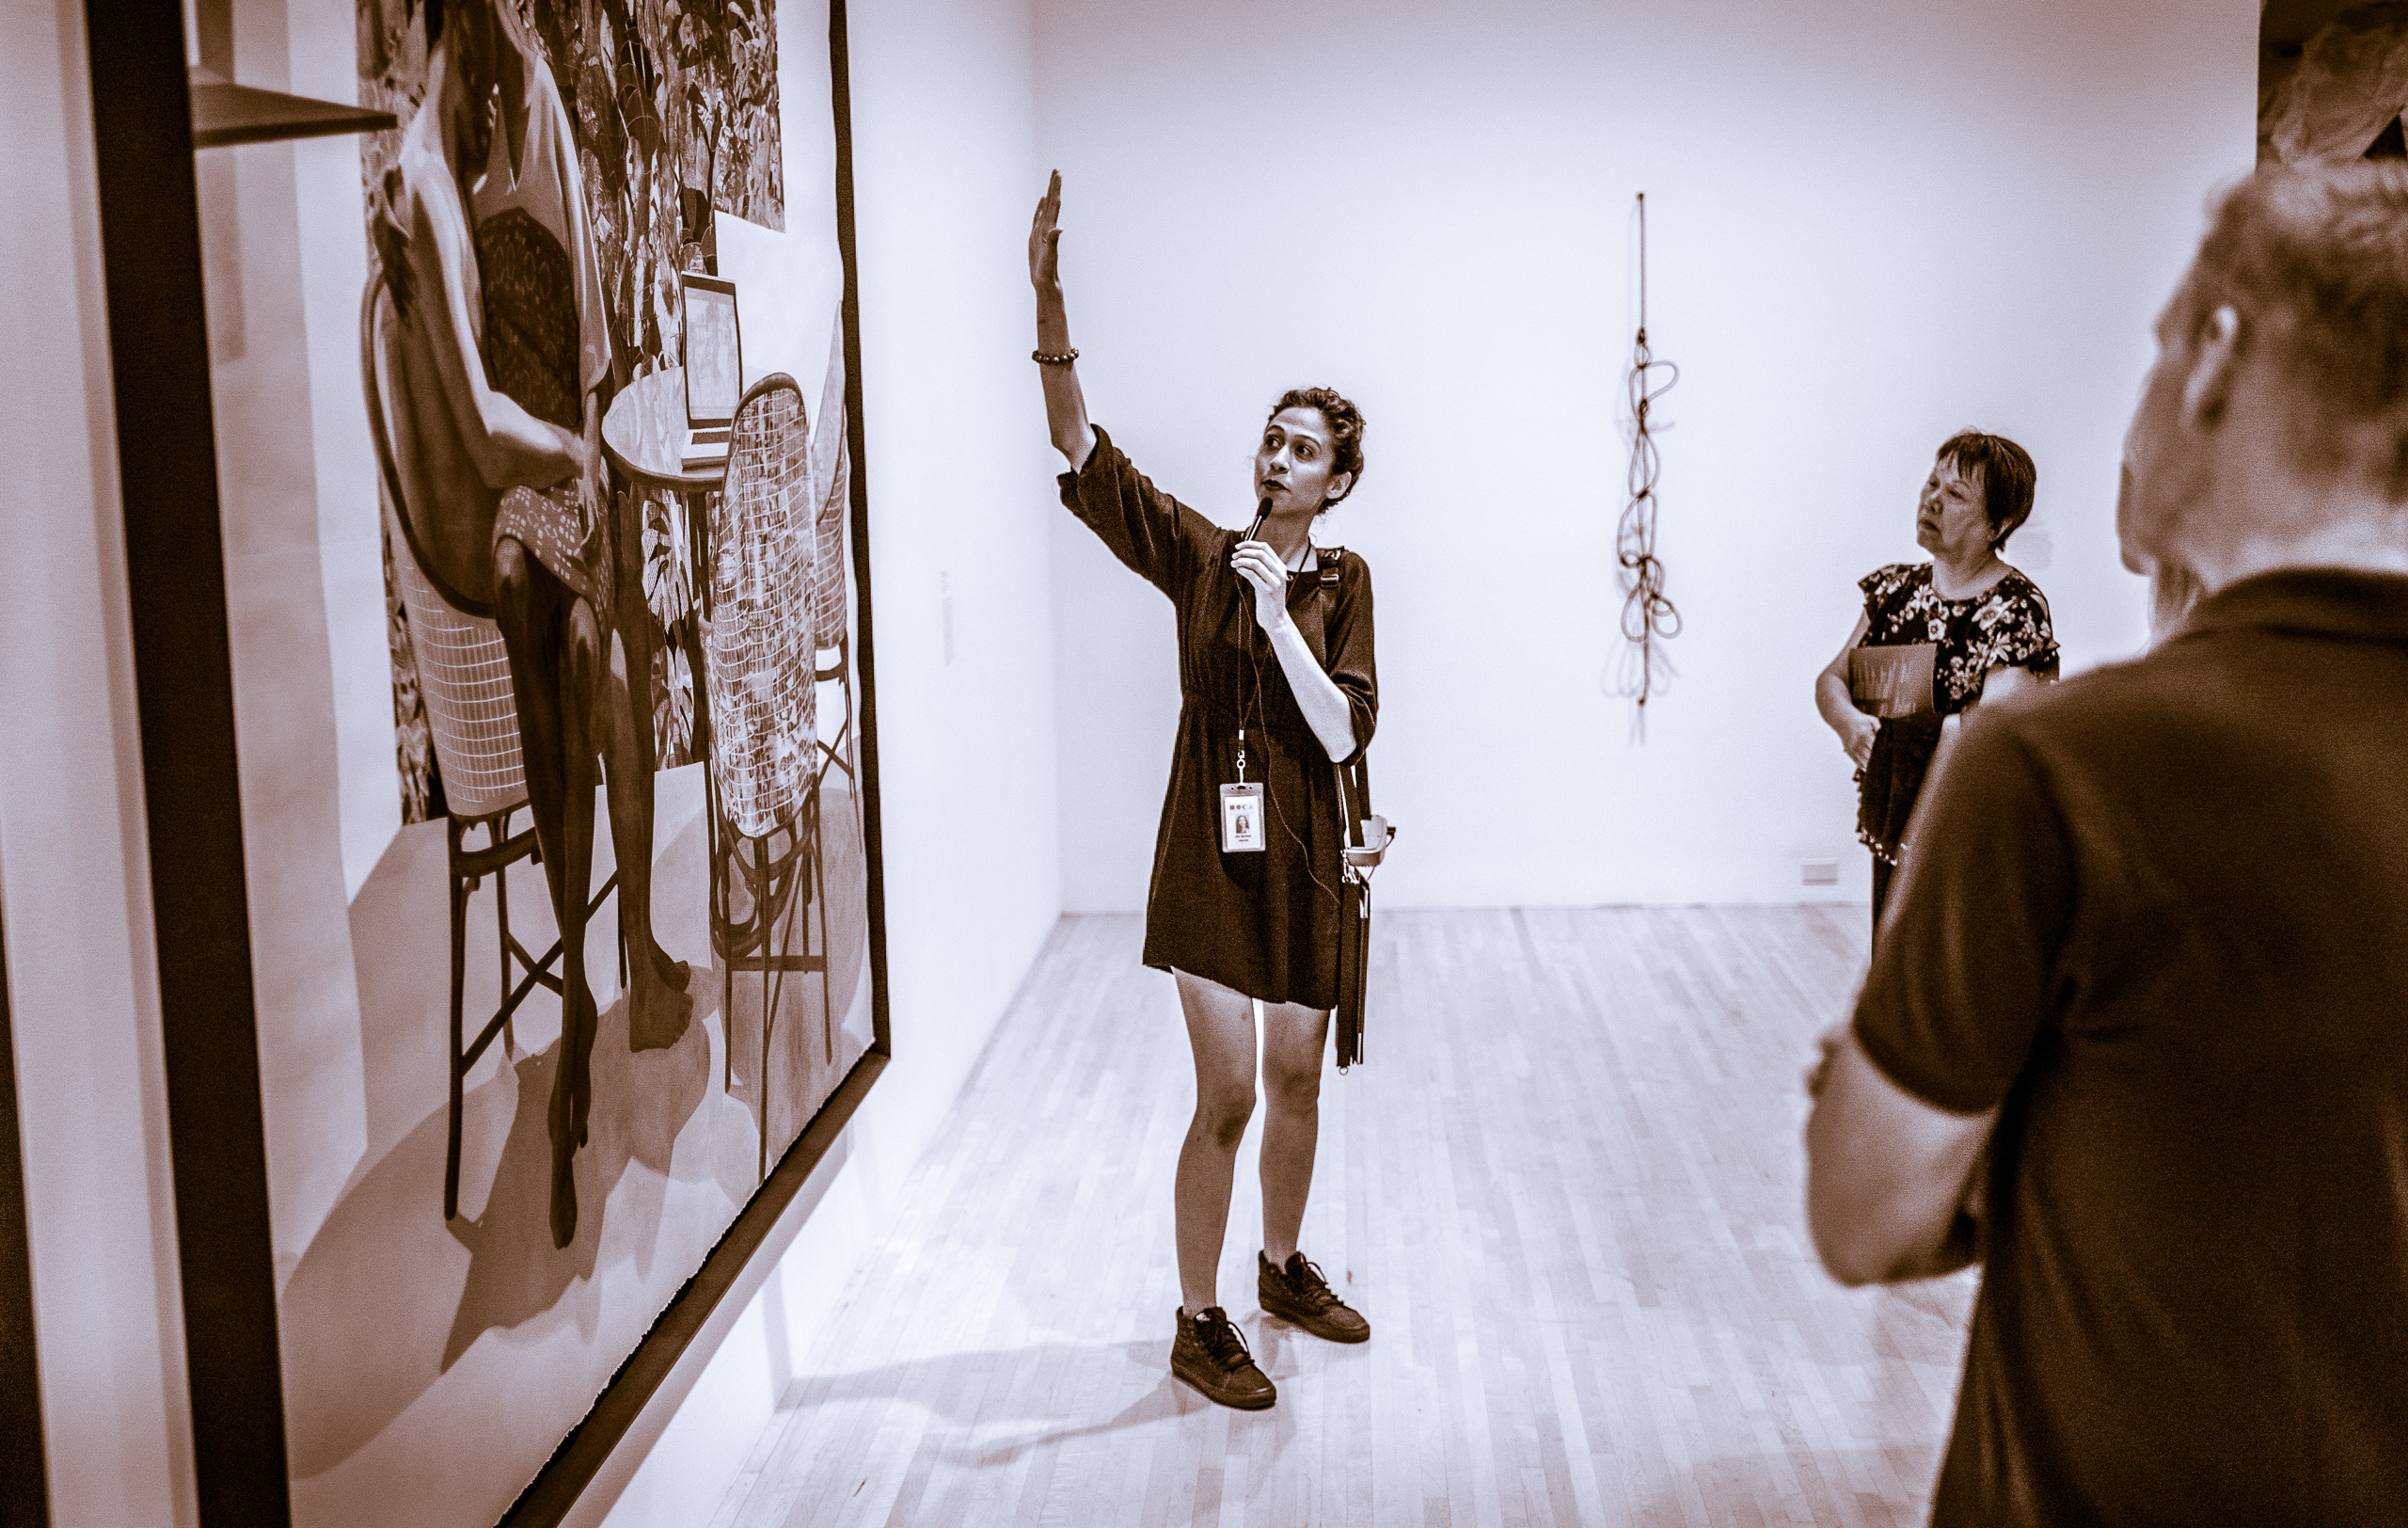 a staff member leads a tour through the MOCA Galleries on Grand Avenue in Downtown Los Angeles